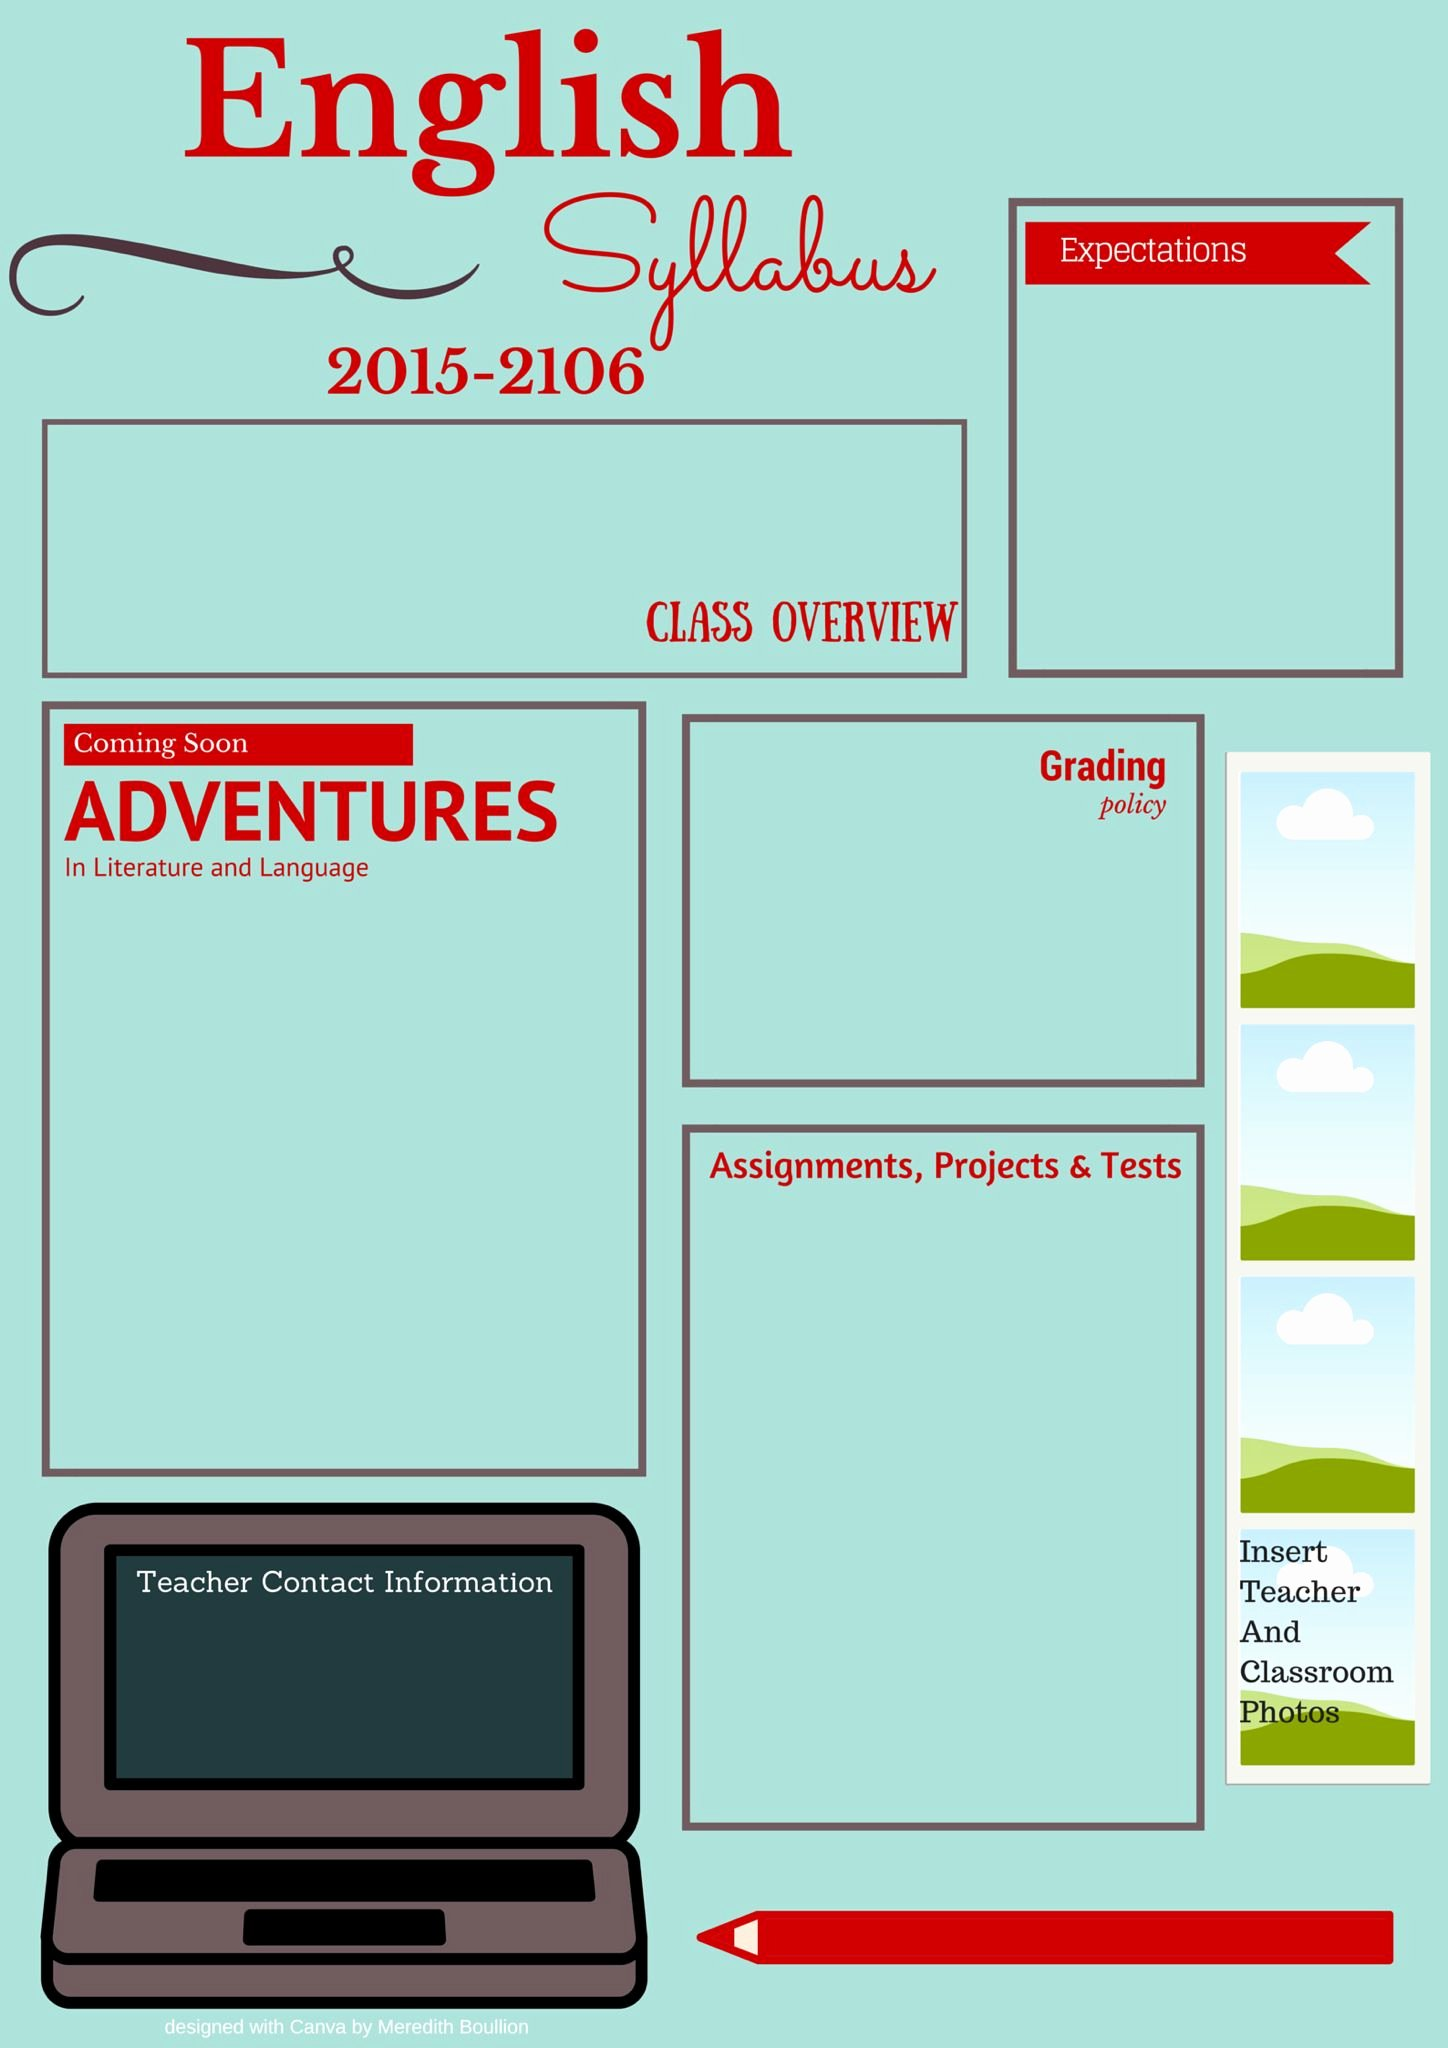 Course Syllabus Template for Teachers Best Of Visual Syllabus Template Made with Canva